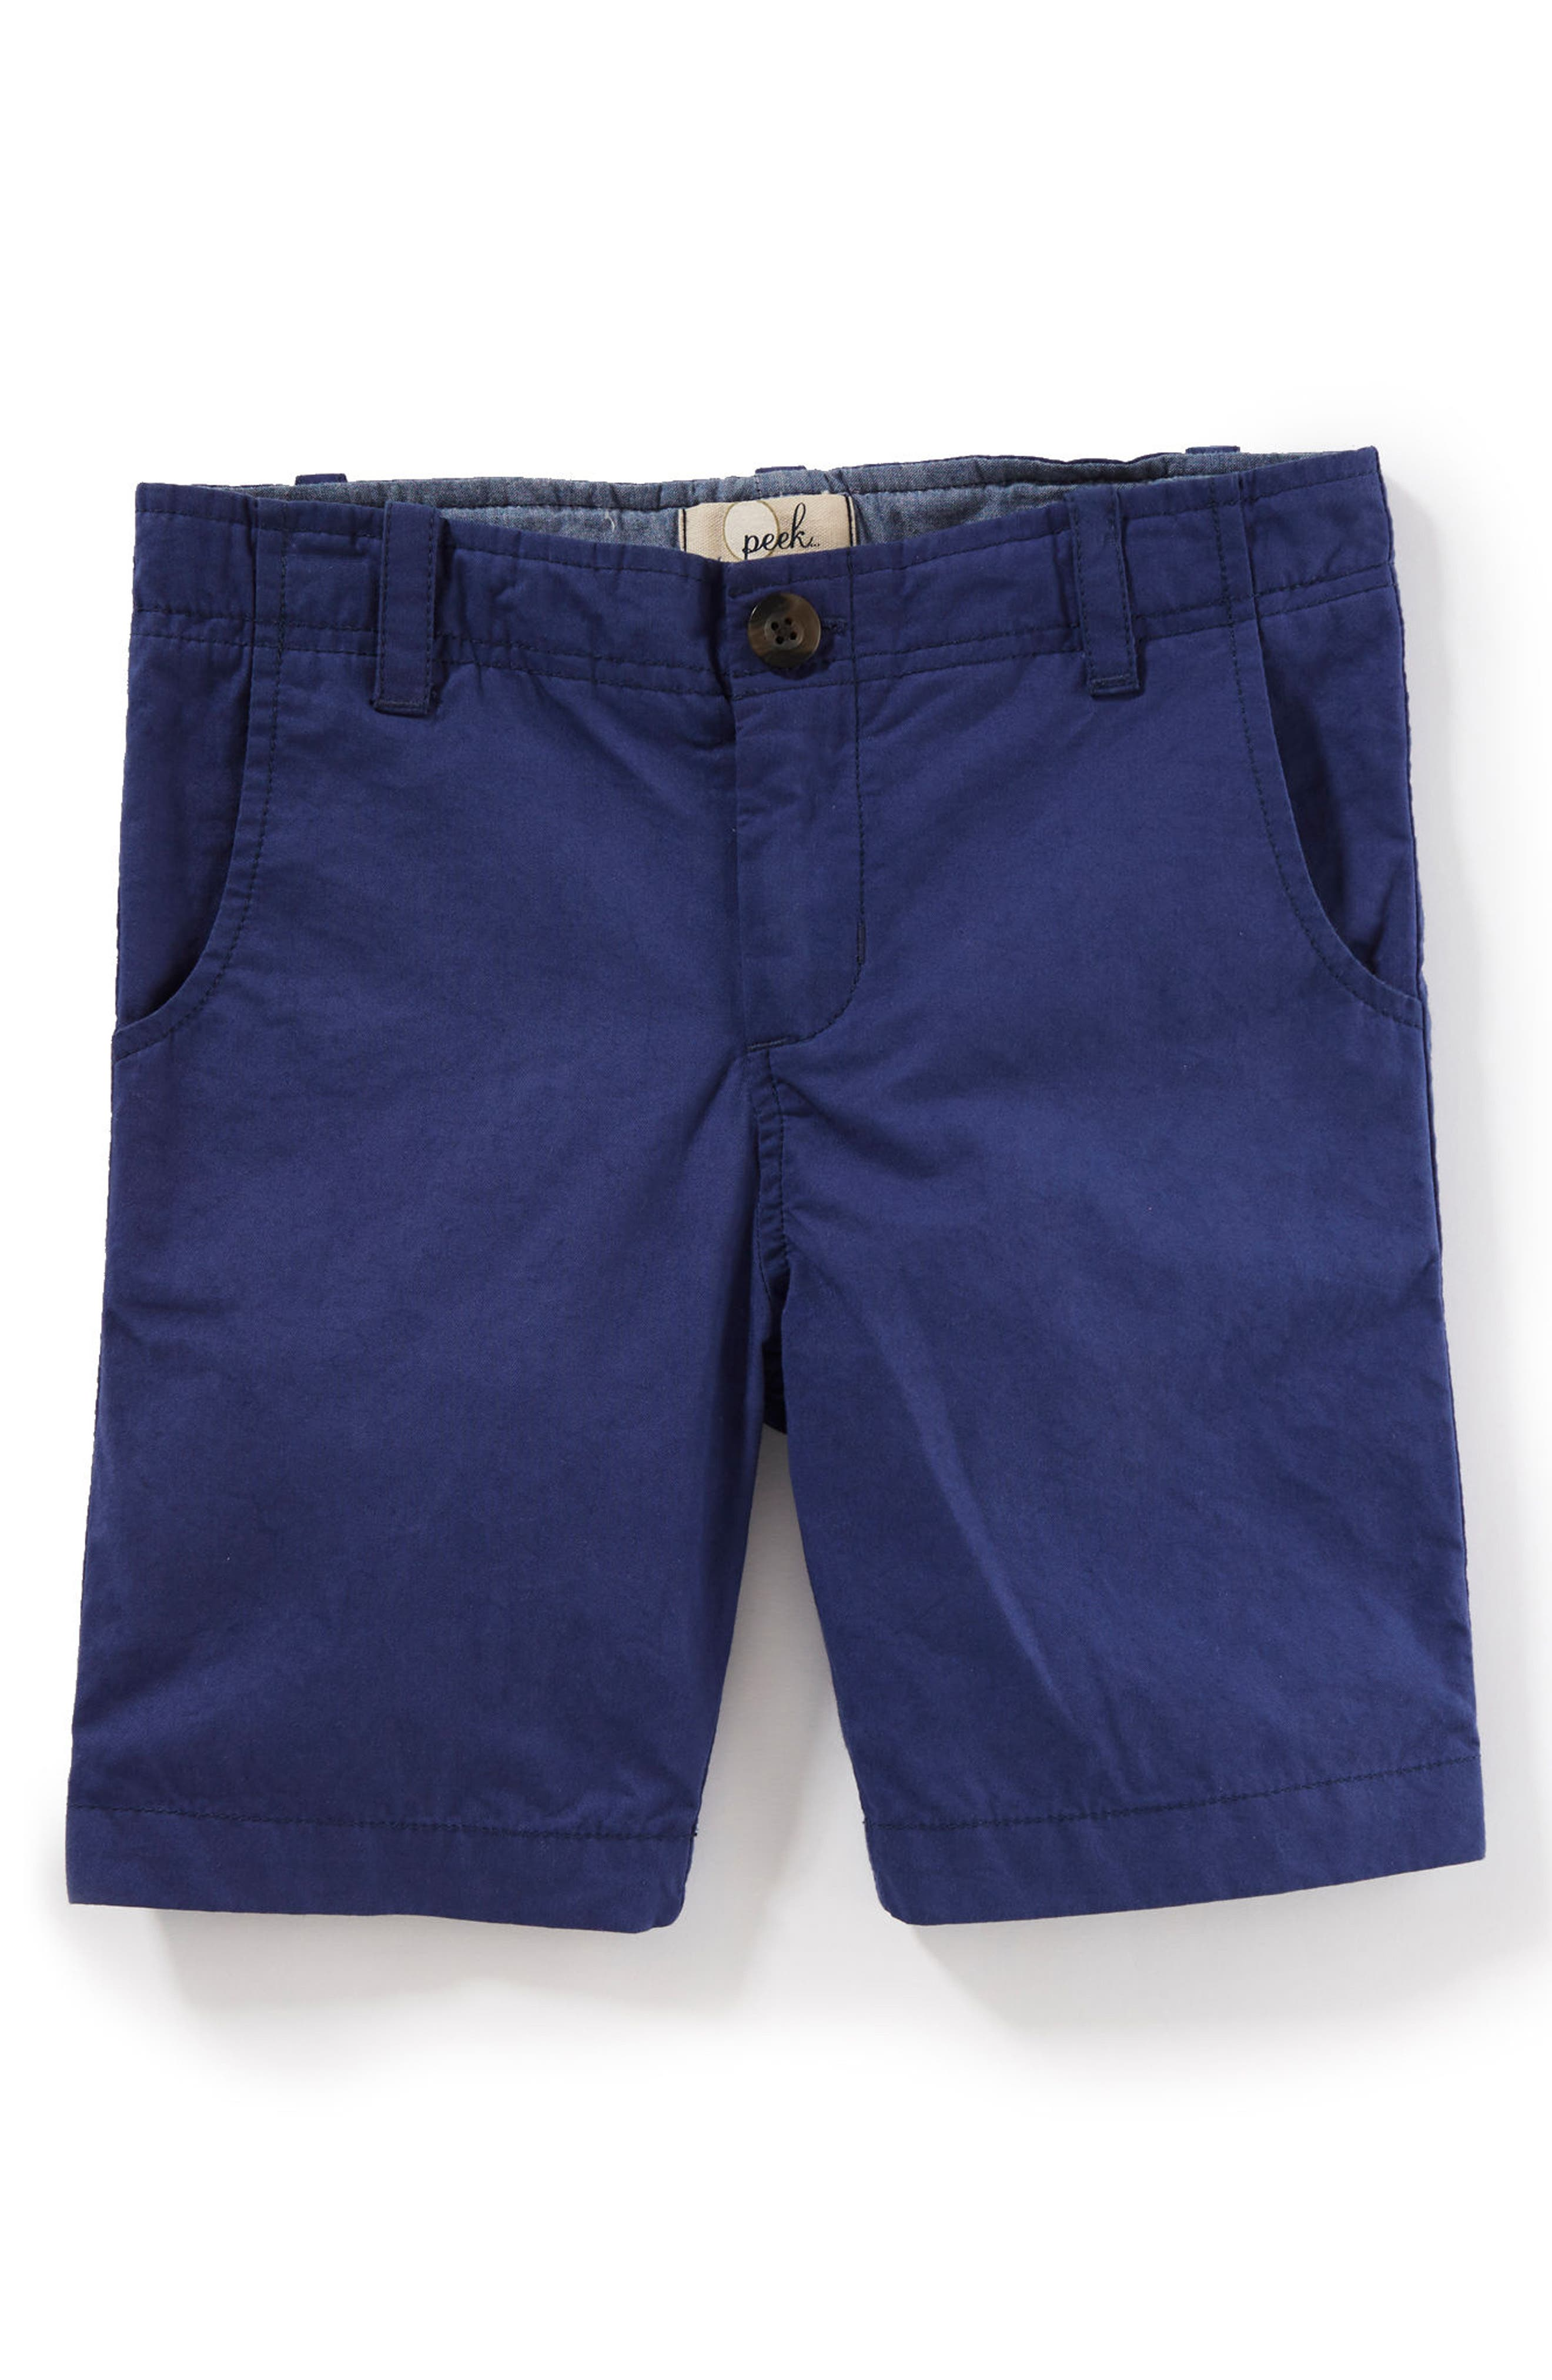 Hudson Shorts,                         Main,                         color, 400